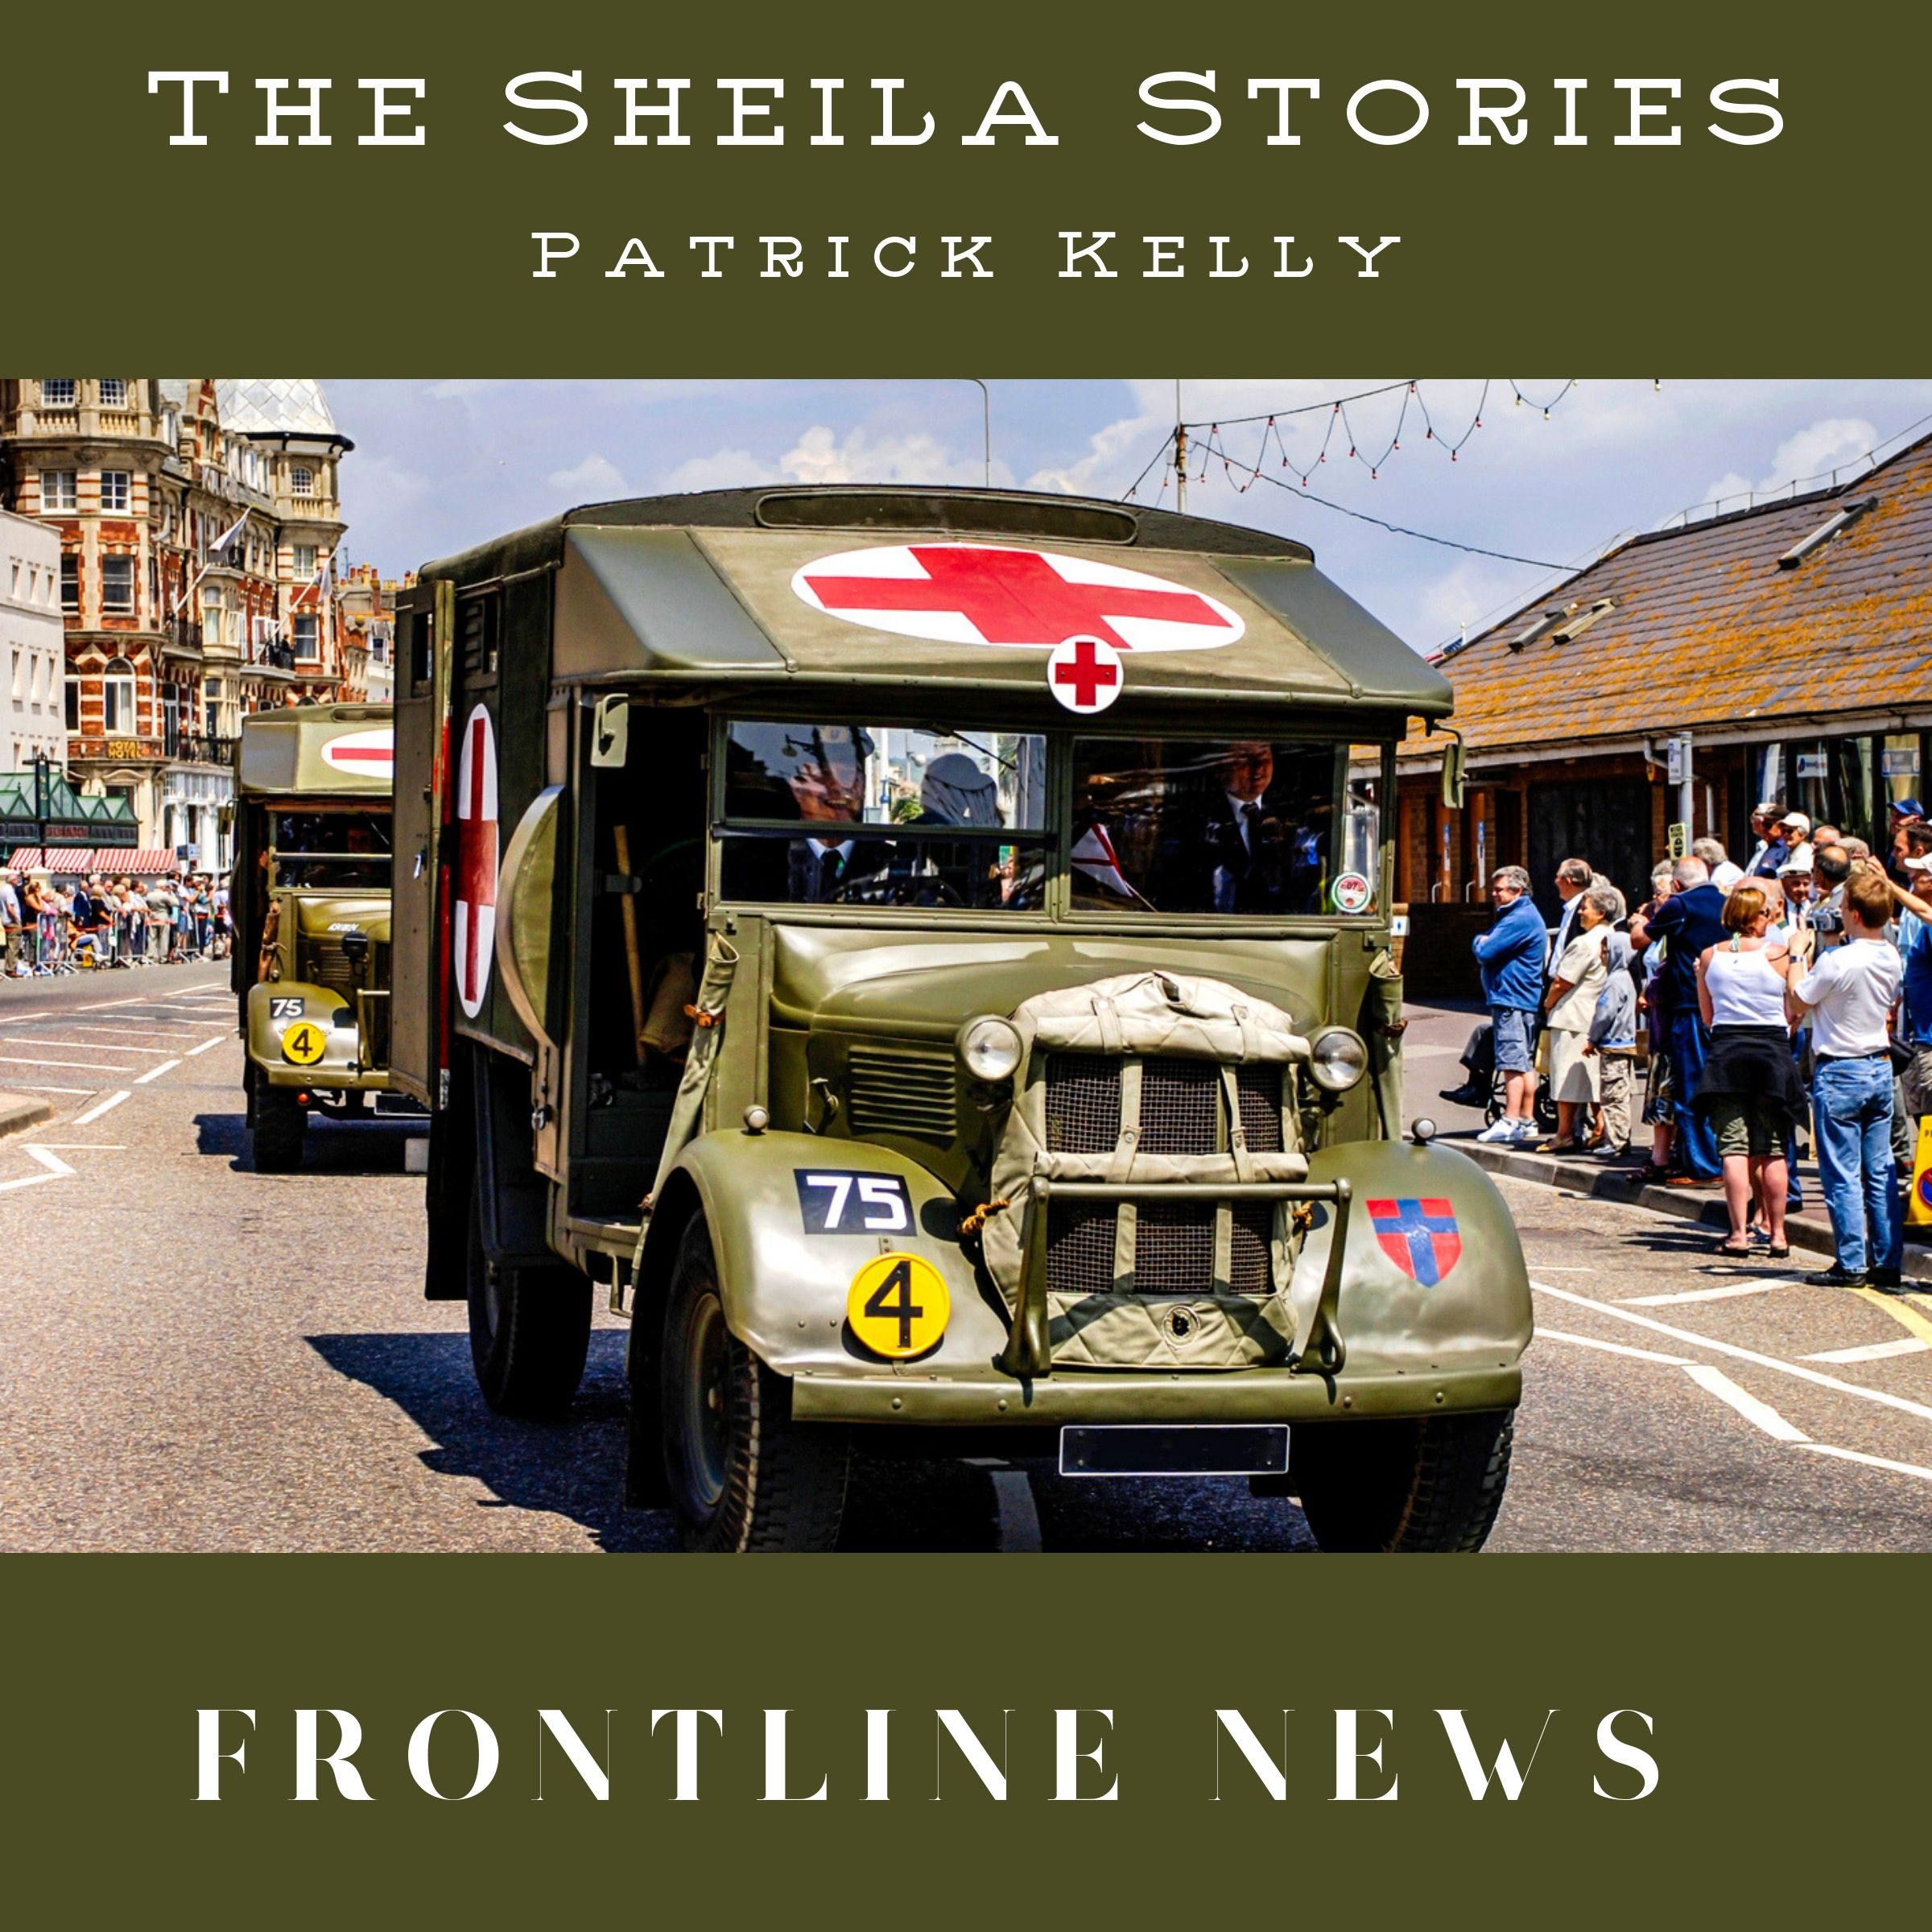 Sheila drove an ambulance at a military hospital in Tamworth.